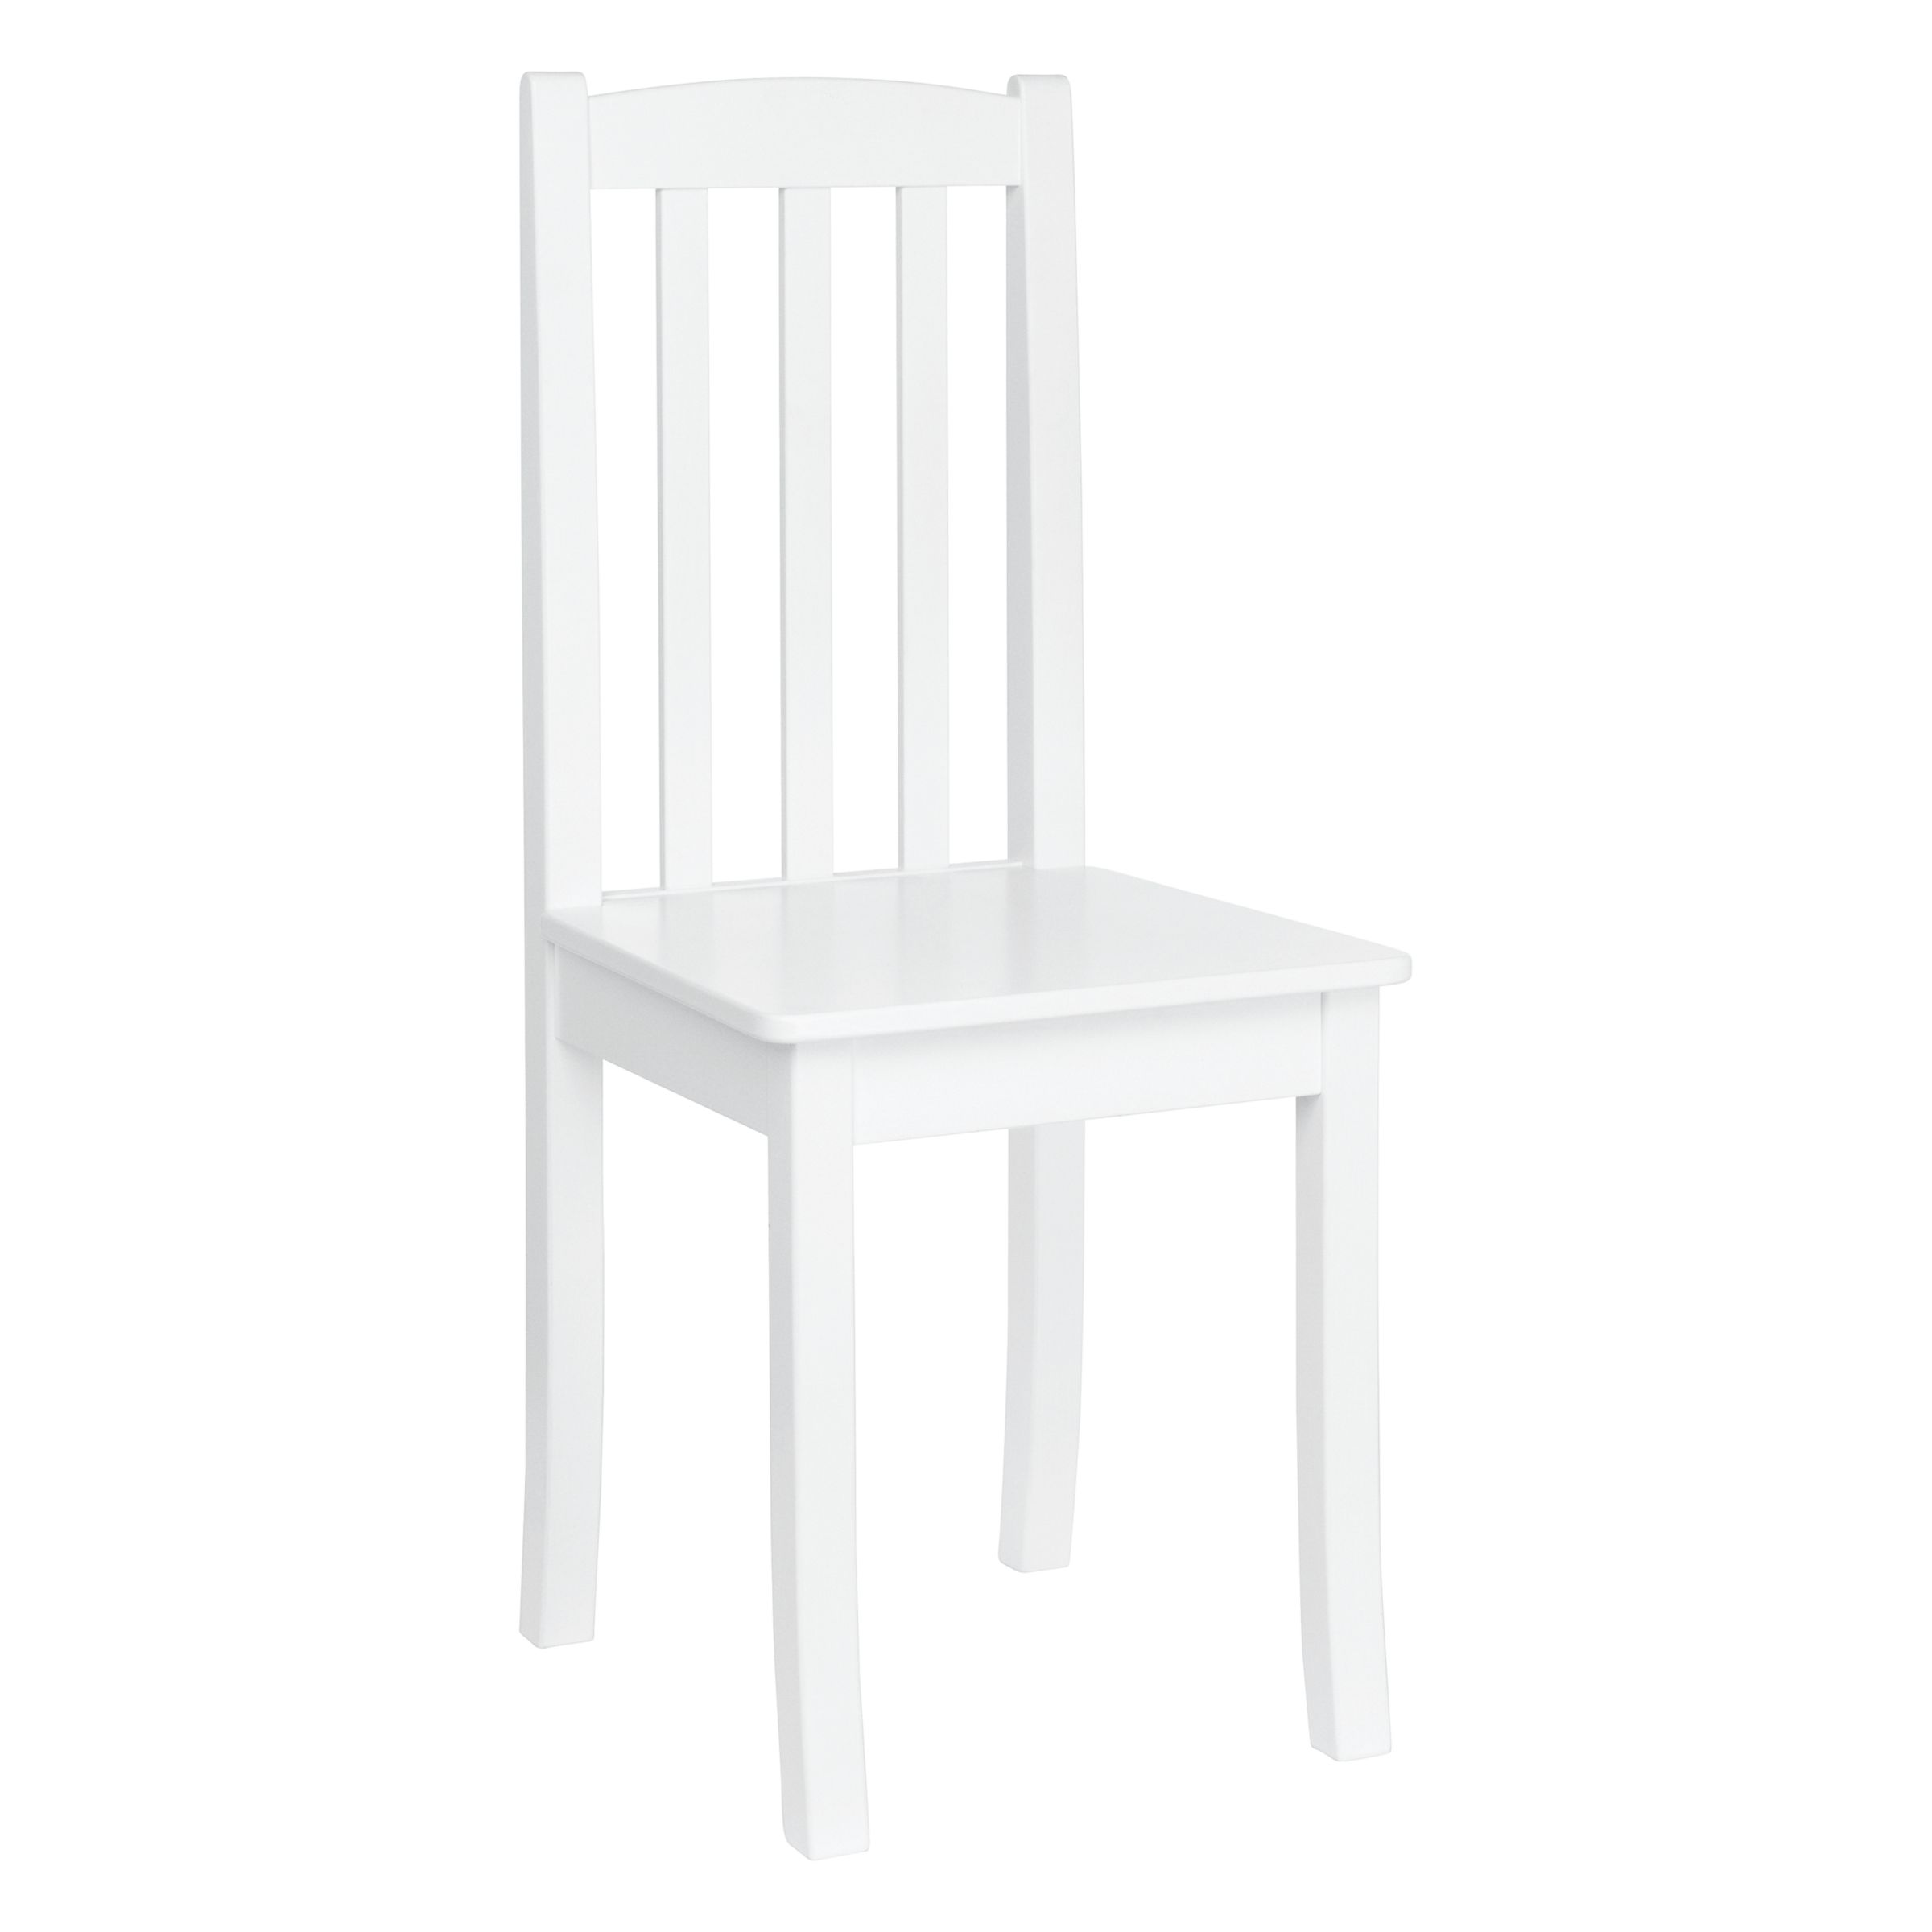 White Desk Chair Wood Great Little Trading Co Nelson Desk Chair White At John Lewis